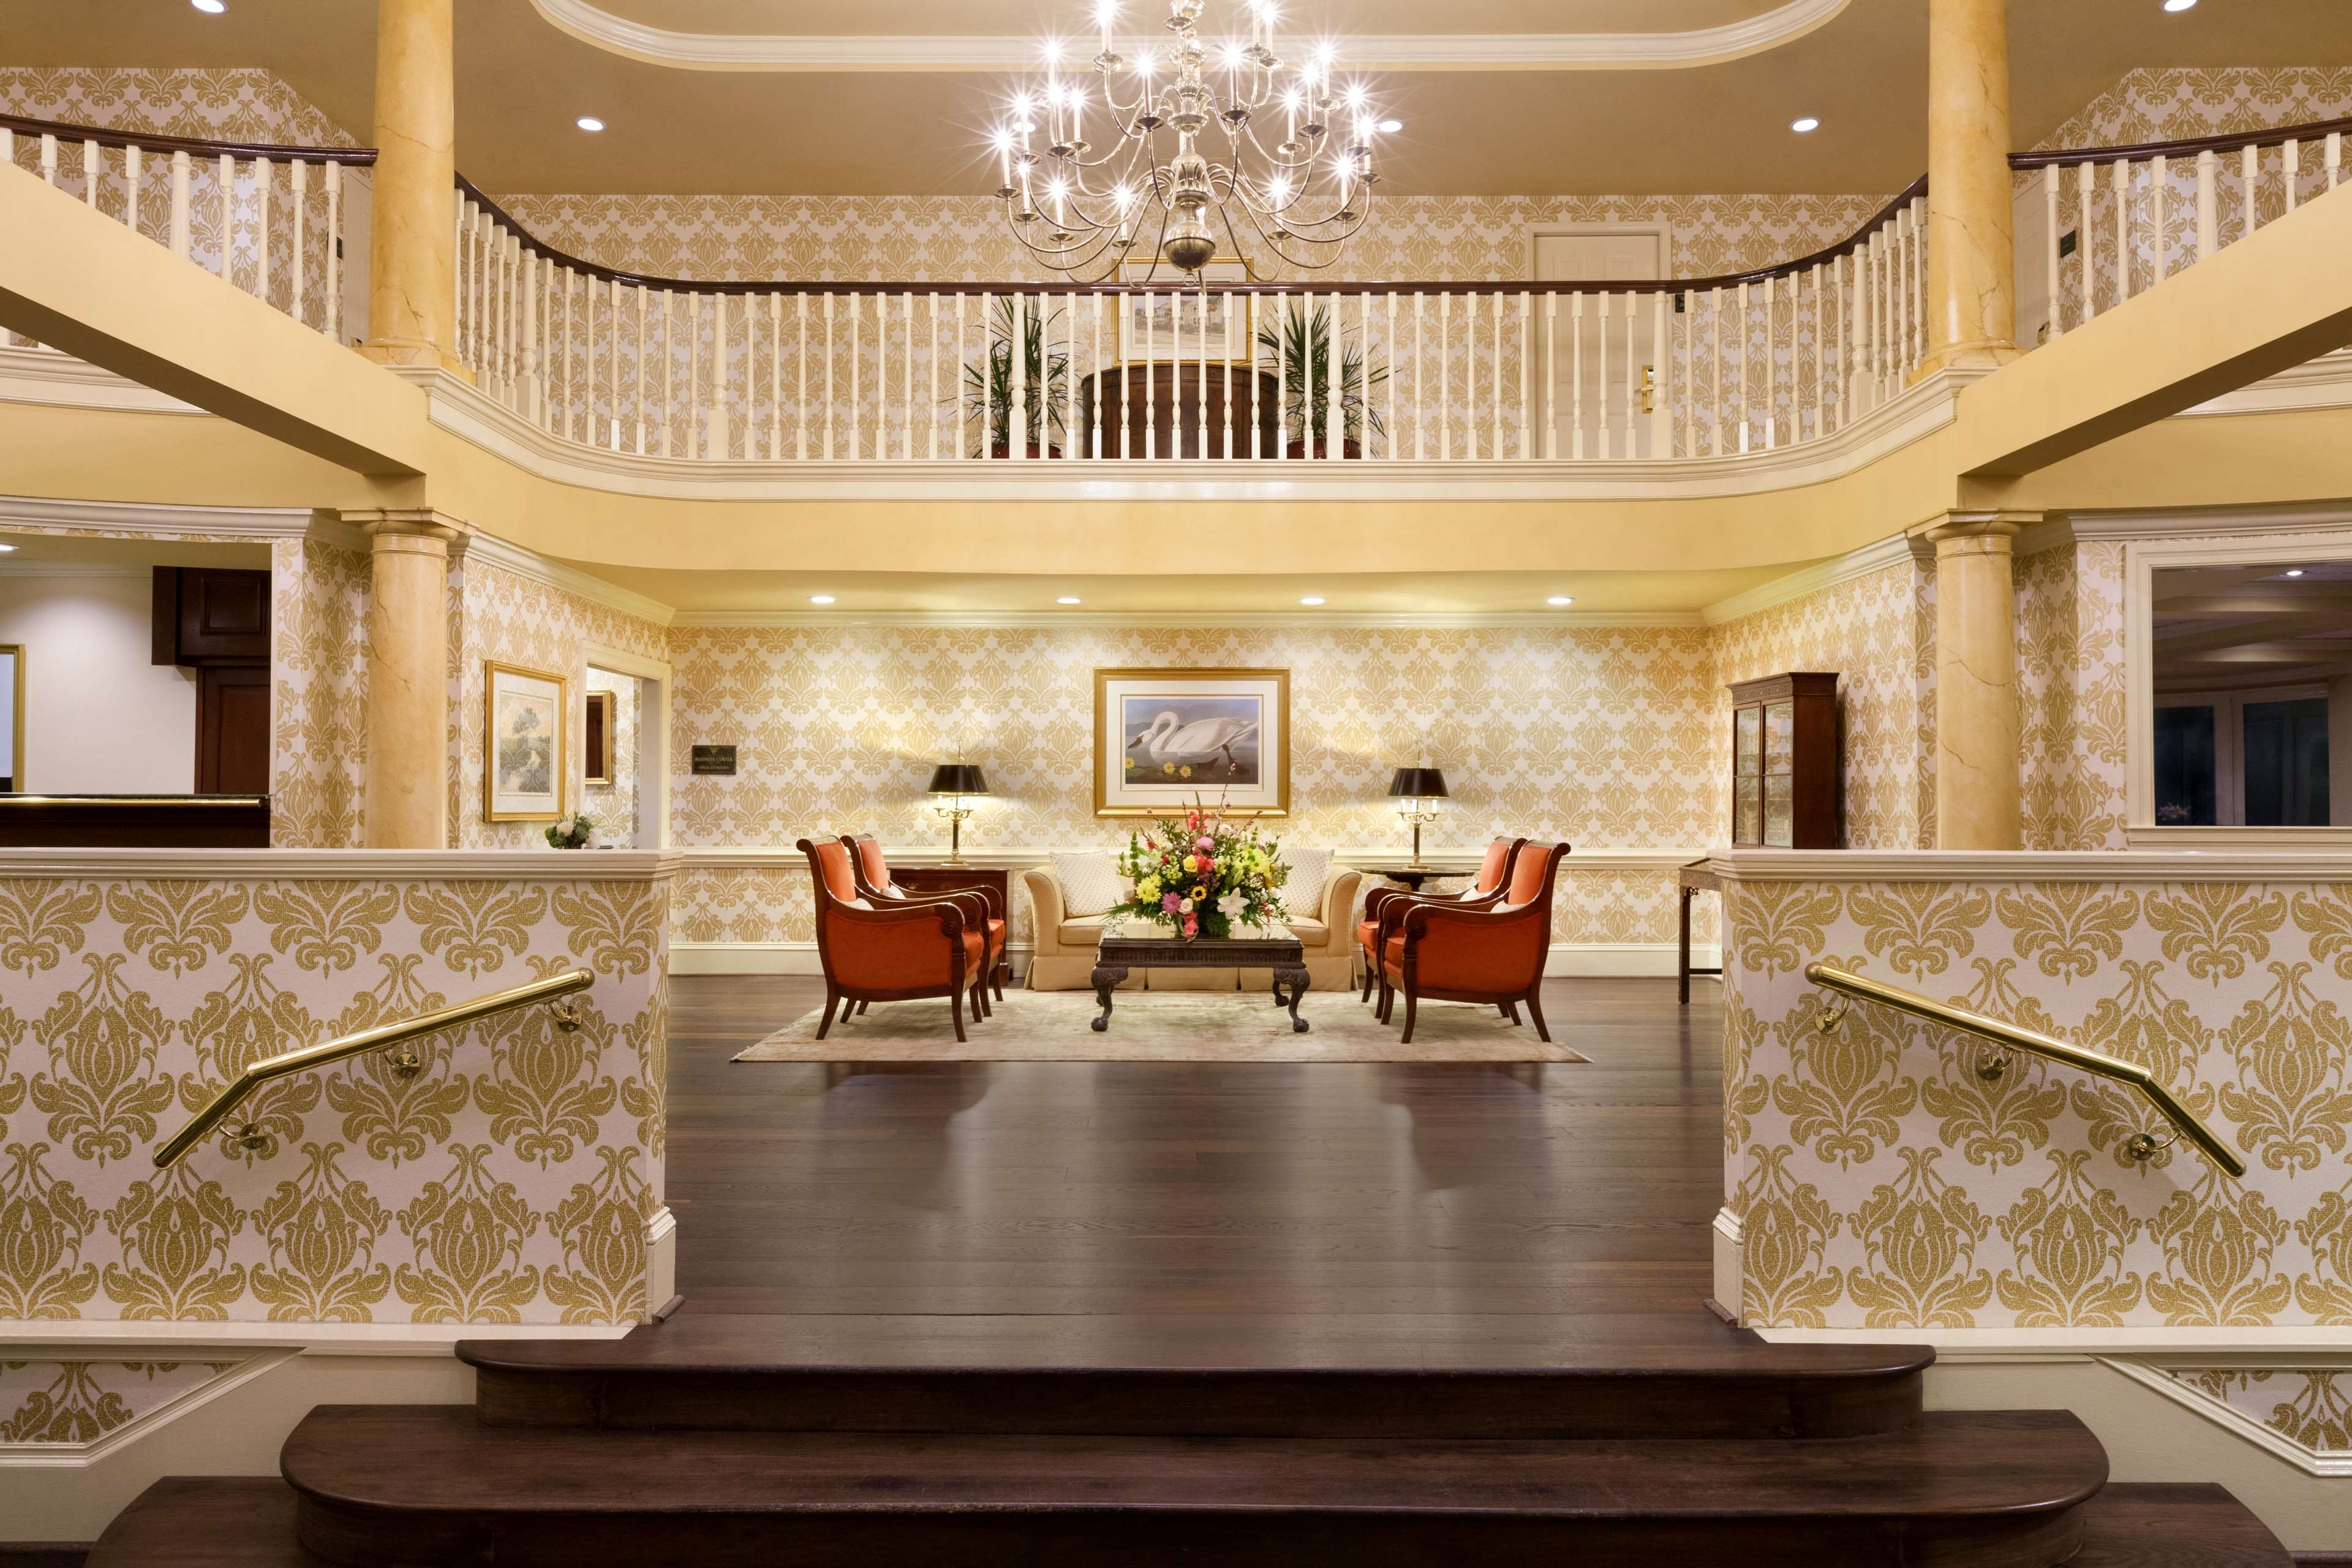 DoubleTree by Hilton Hotel & Suites Charleston - Historic District image 4